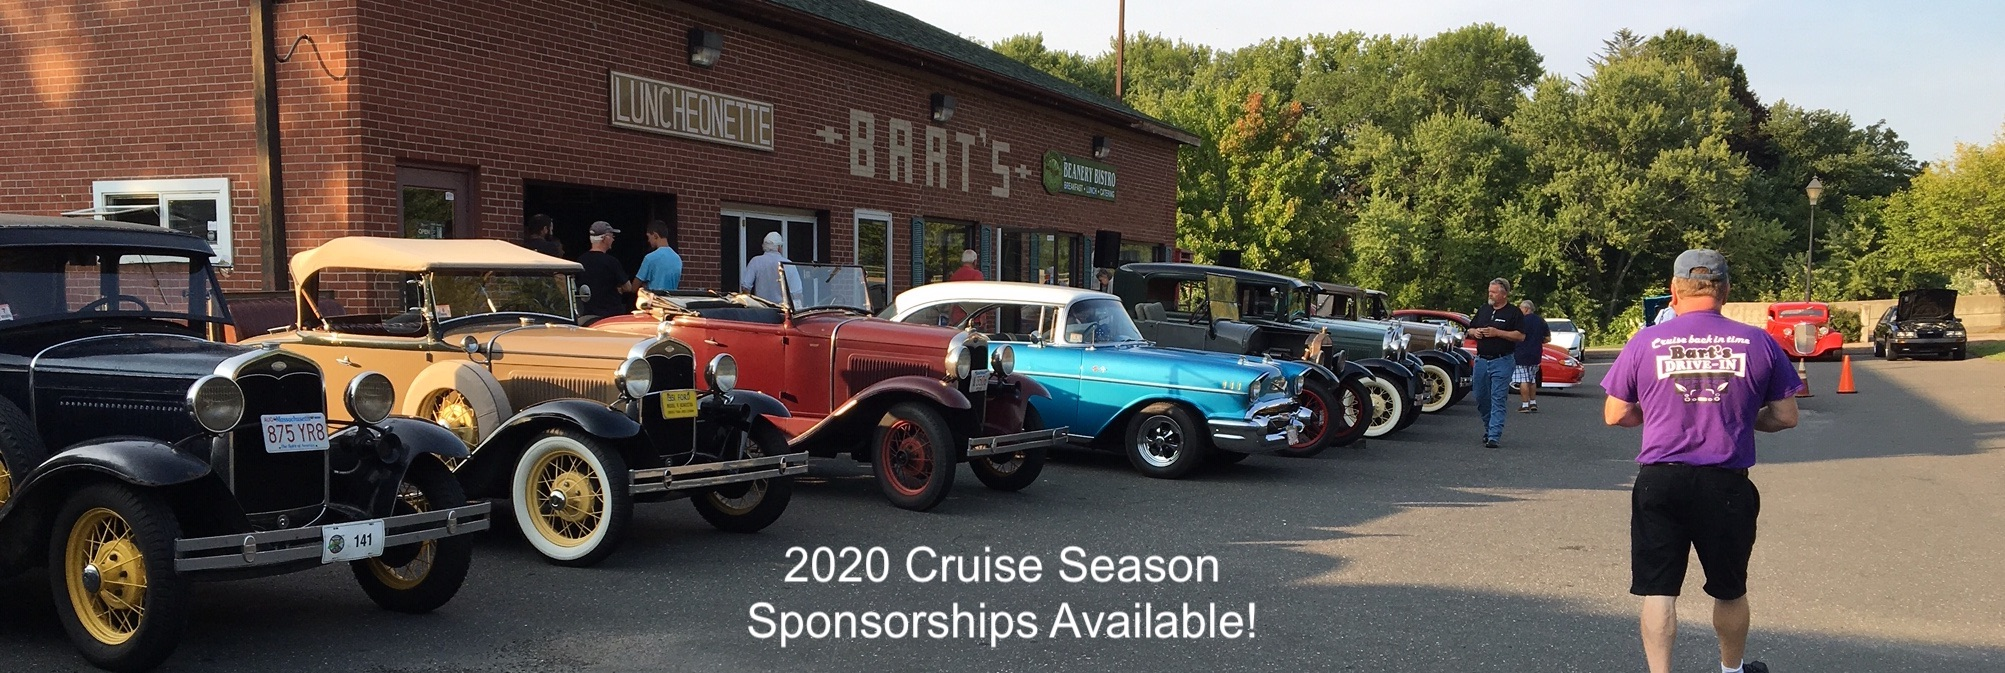 classic car cruise nights all summer